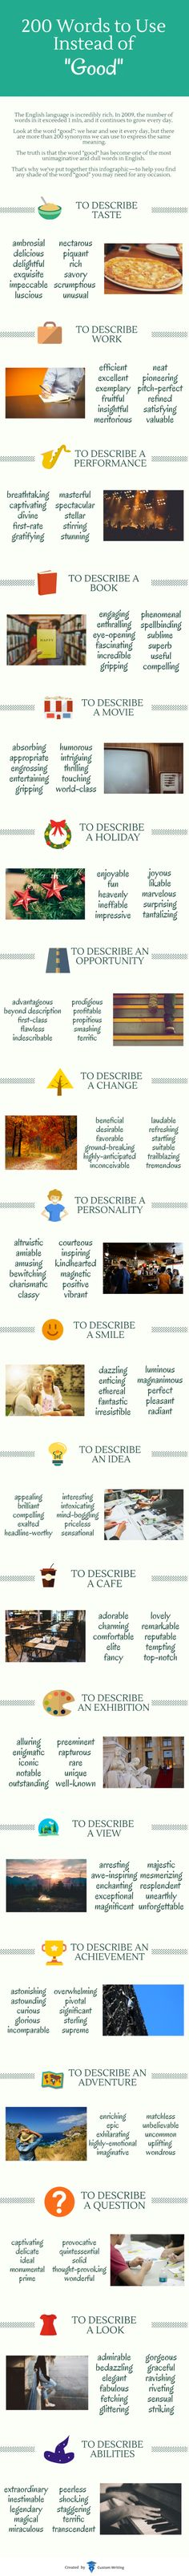 """Good"" is dull and unimaginative. People often use ""good"" as a lazy replacement for a more appropriate word. Custom Writing have created an excellent infographic that lists 200 words you can use instead of ""good"". For instance, to describe taste, use ""scrumptious"" or ""delicious"". To describe a performance, use ""stellar"" or ""captivating"". Know more in […]"